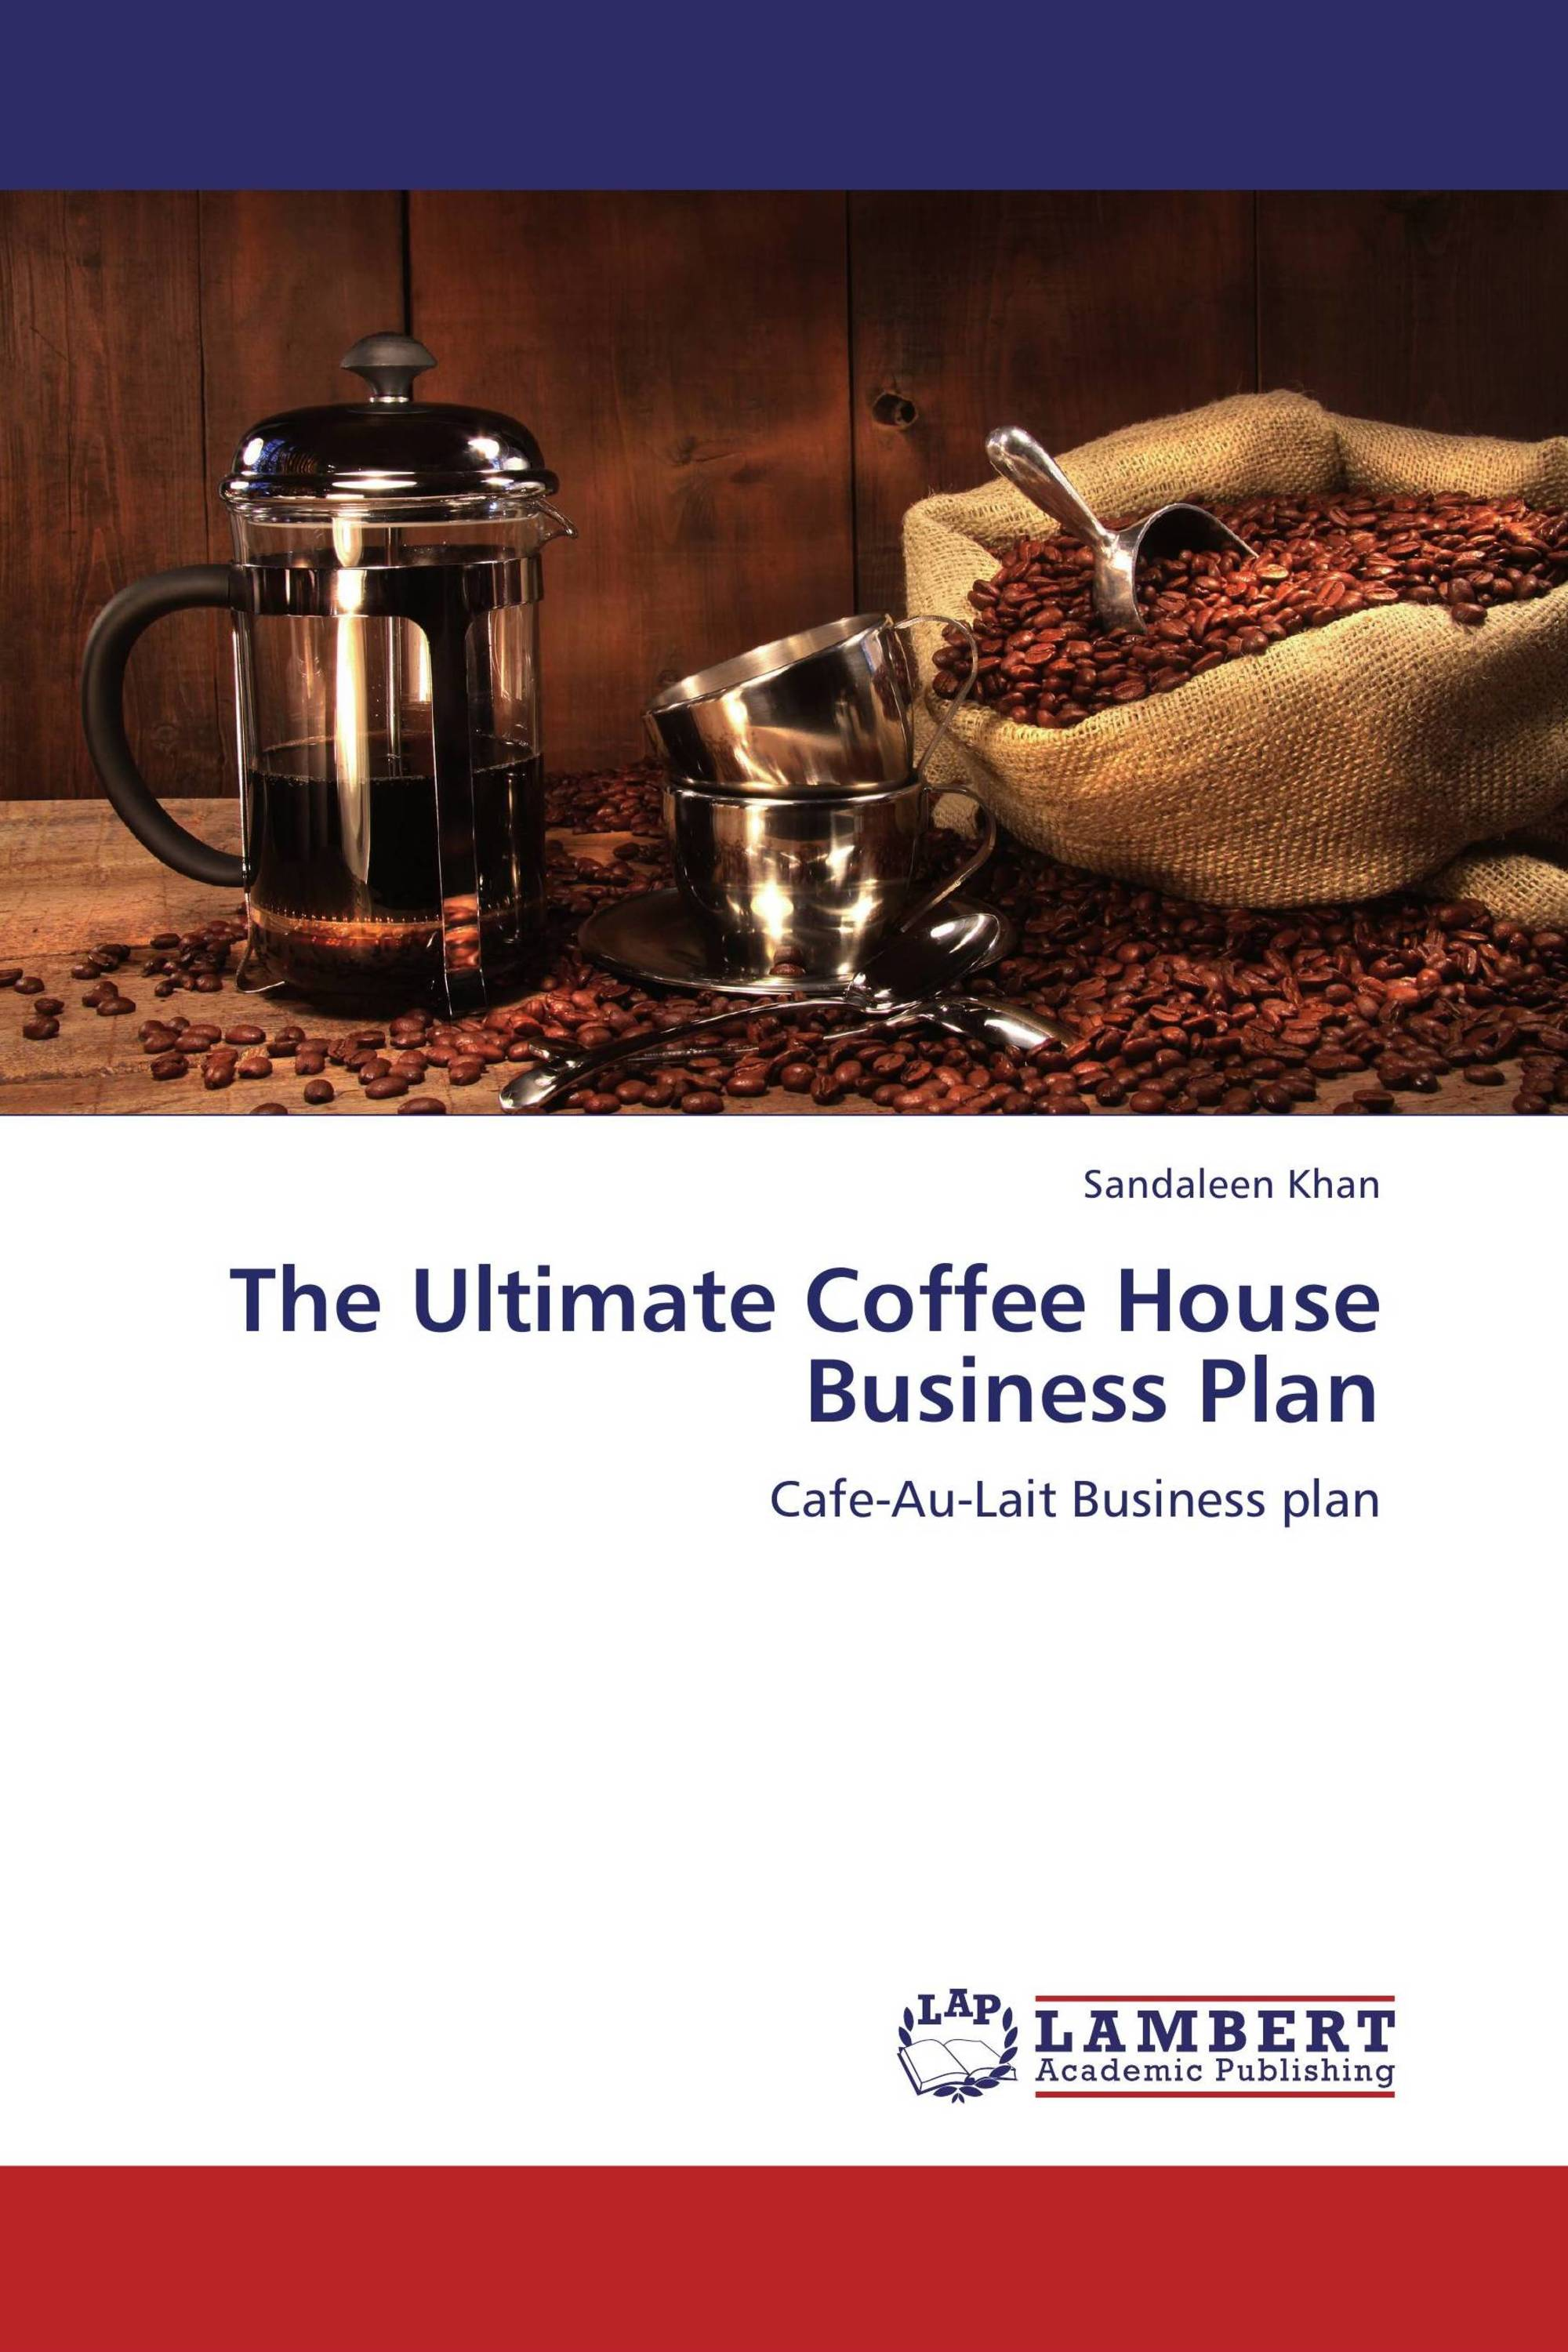 The ultimate coffee house business plan 978 3 8454 2125 for The new ultimate book of home plans pdf